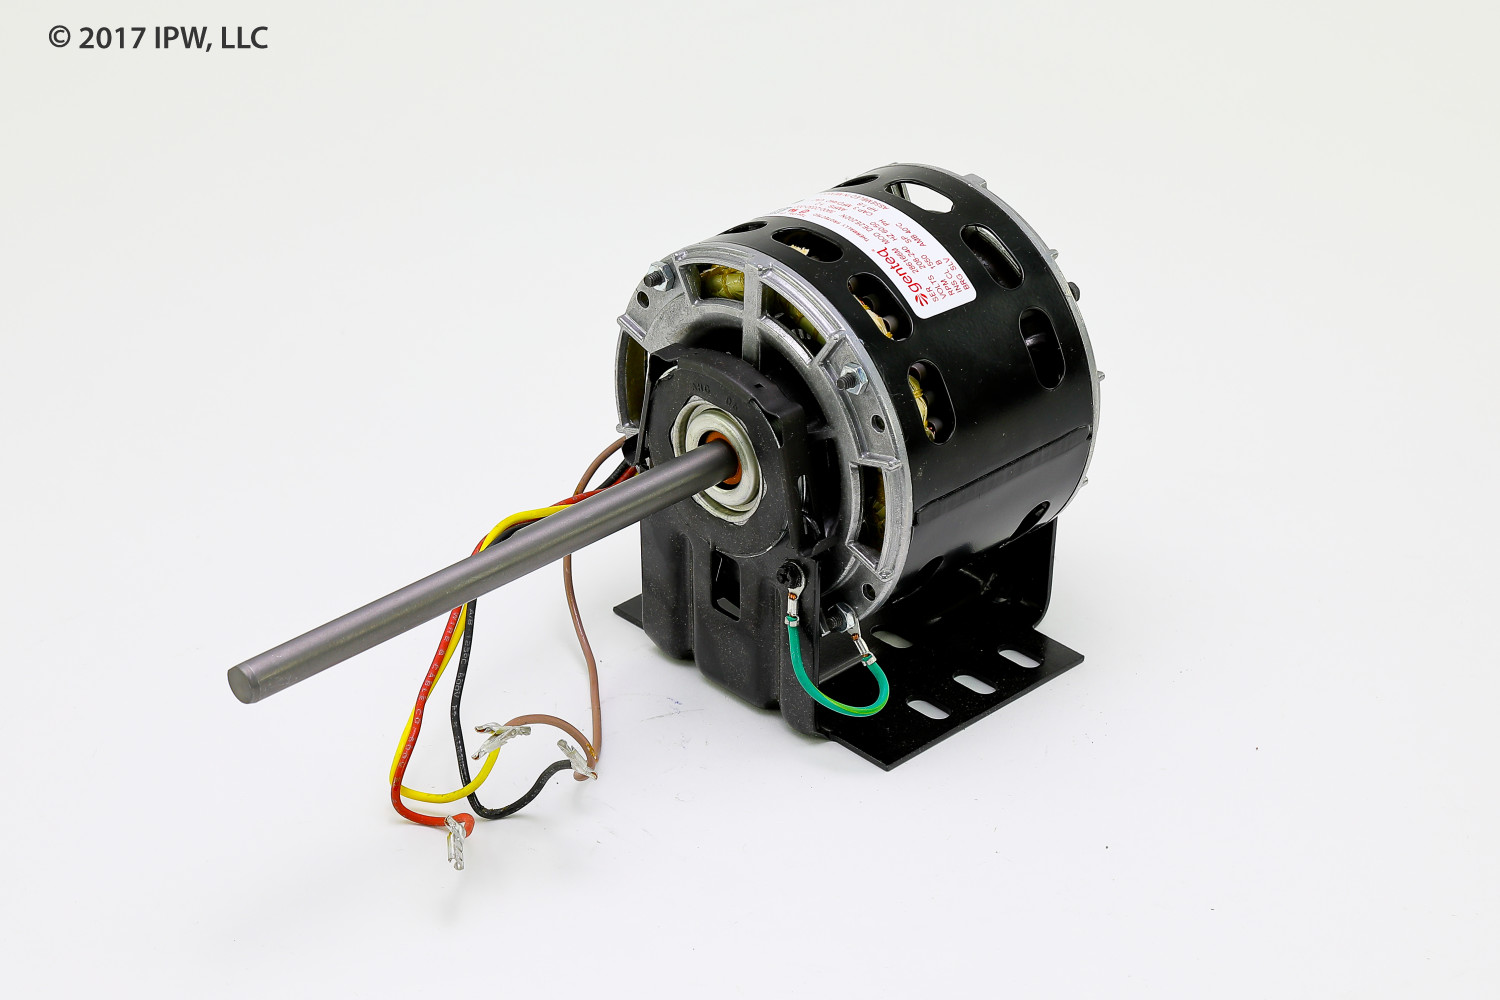 Marley Engineered Products 3900-2032-000 1/8HP 208-240V 1550RPM 2Sp Mtr